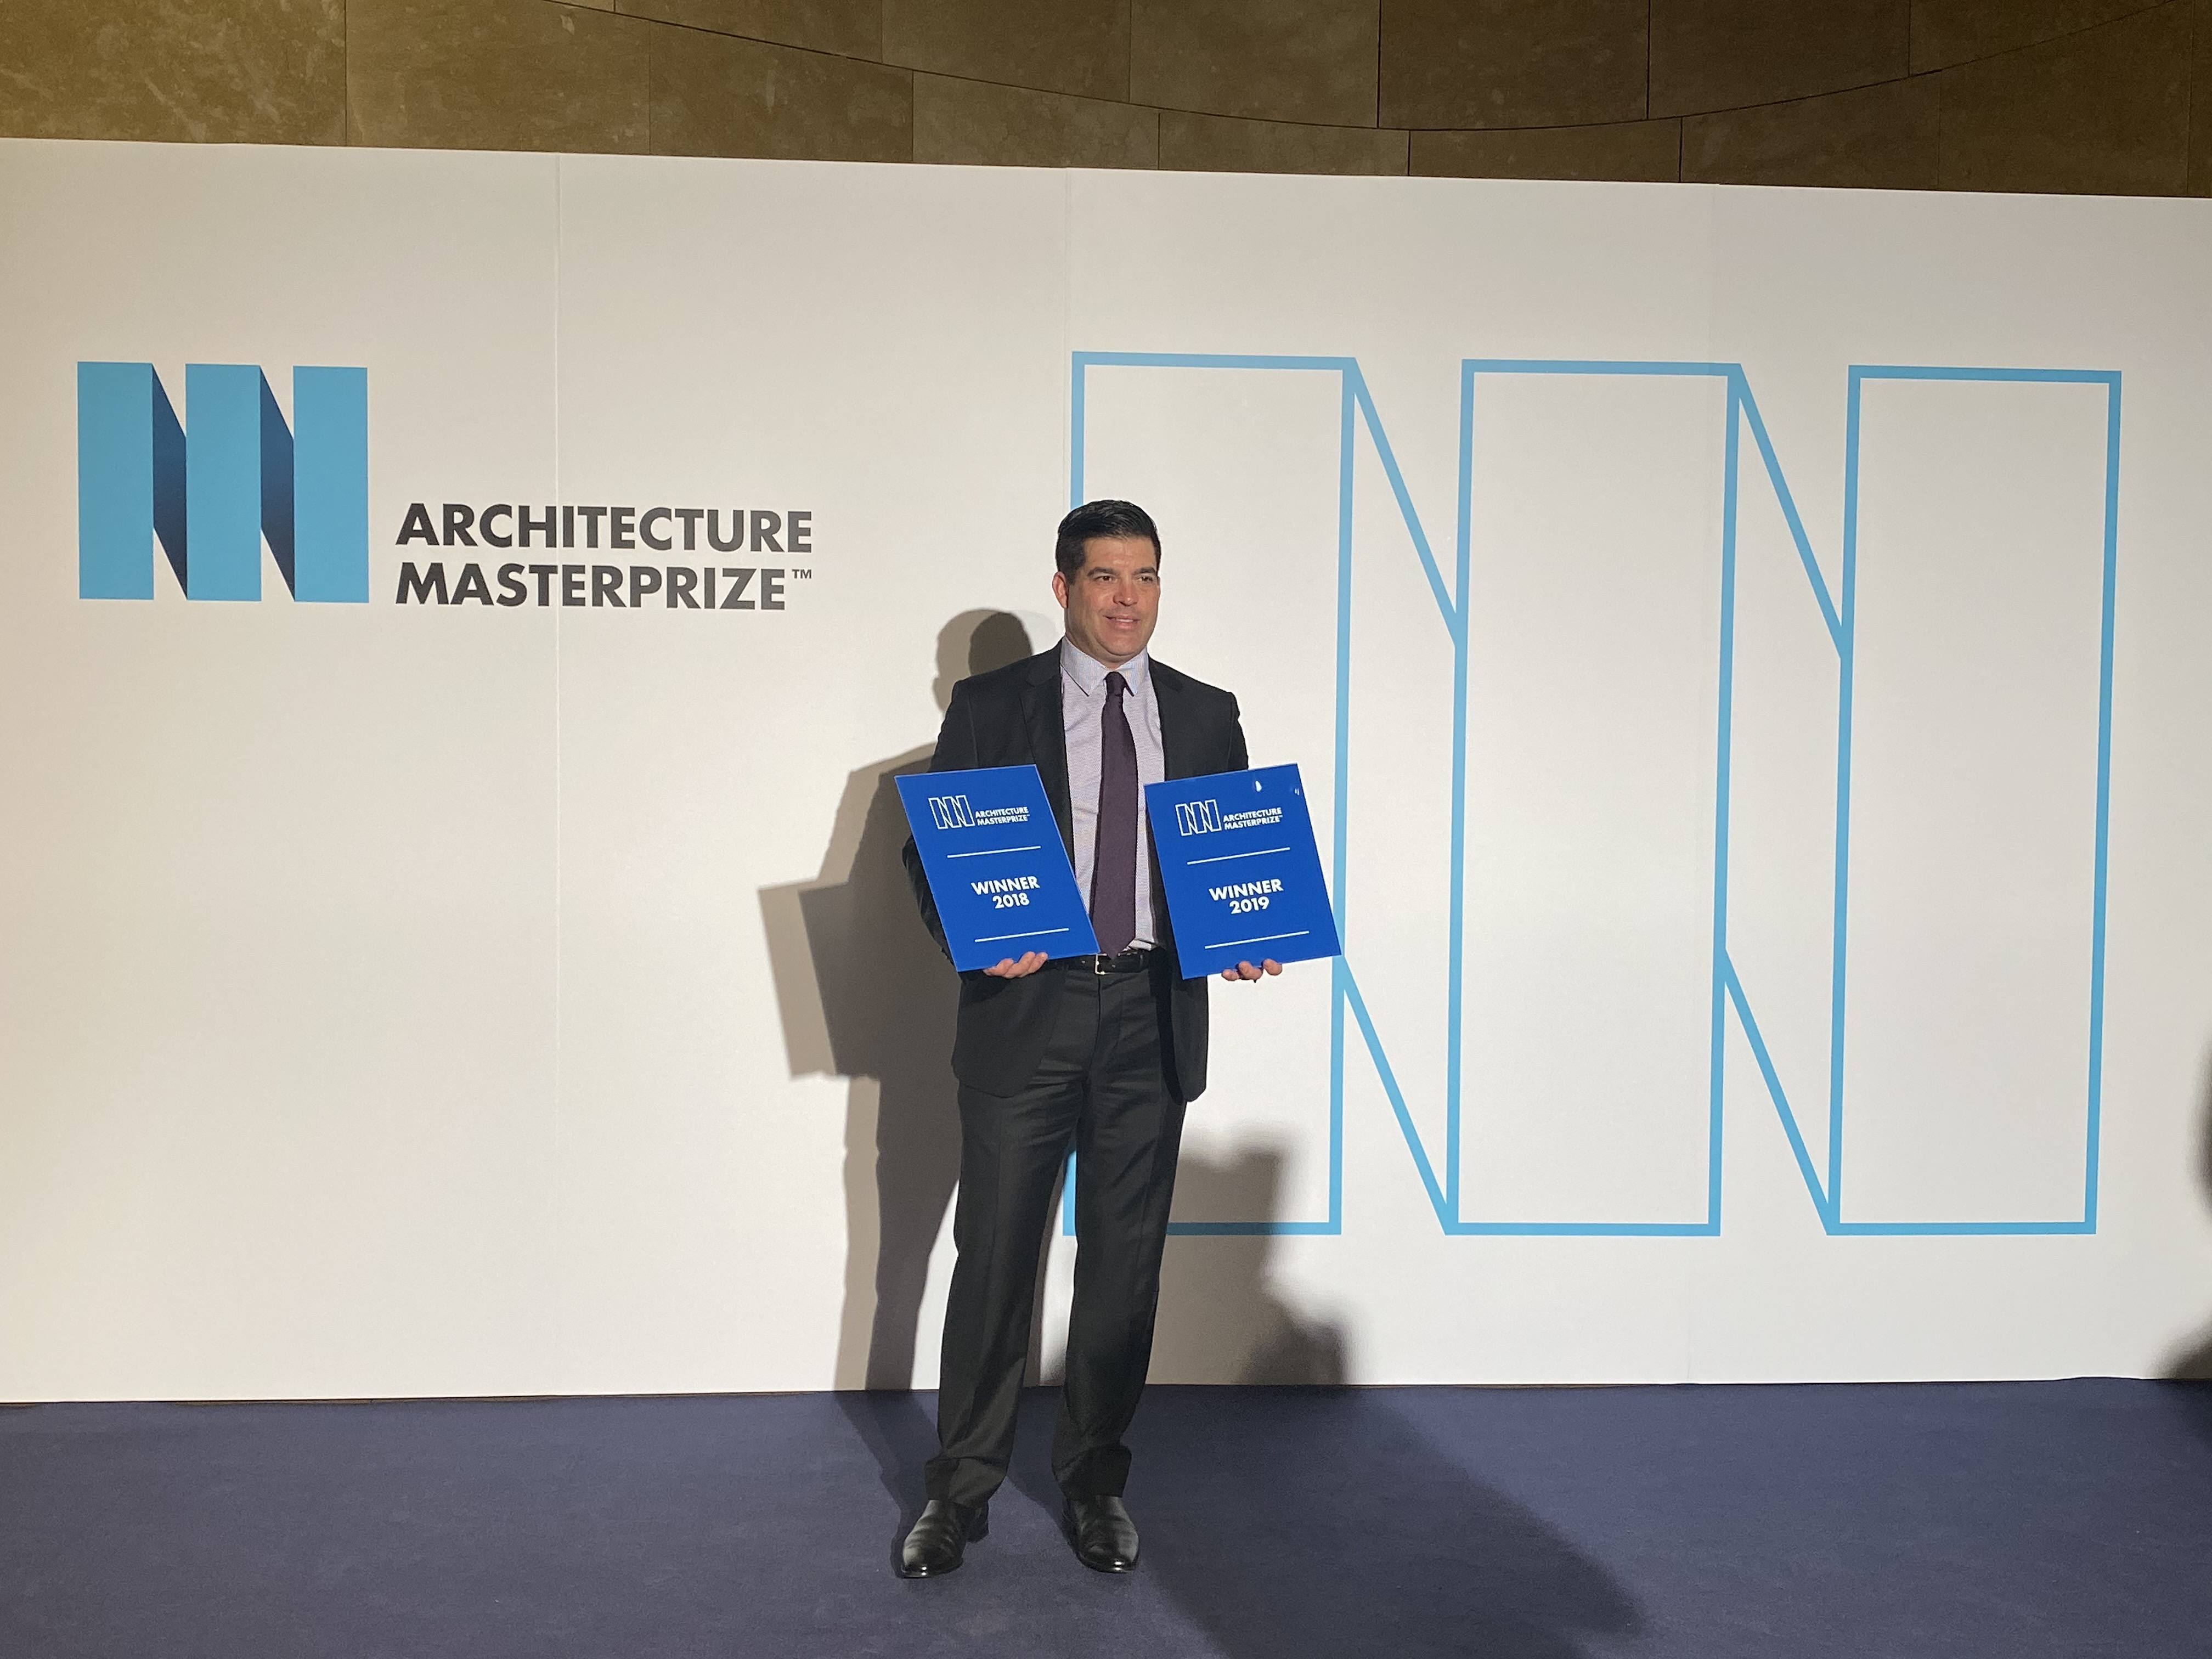 David Hovey Jr., AIA winning award